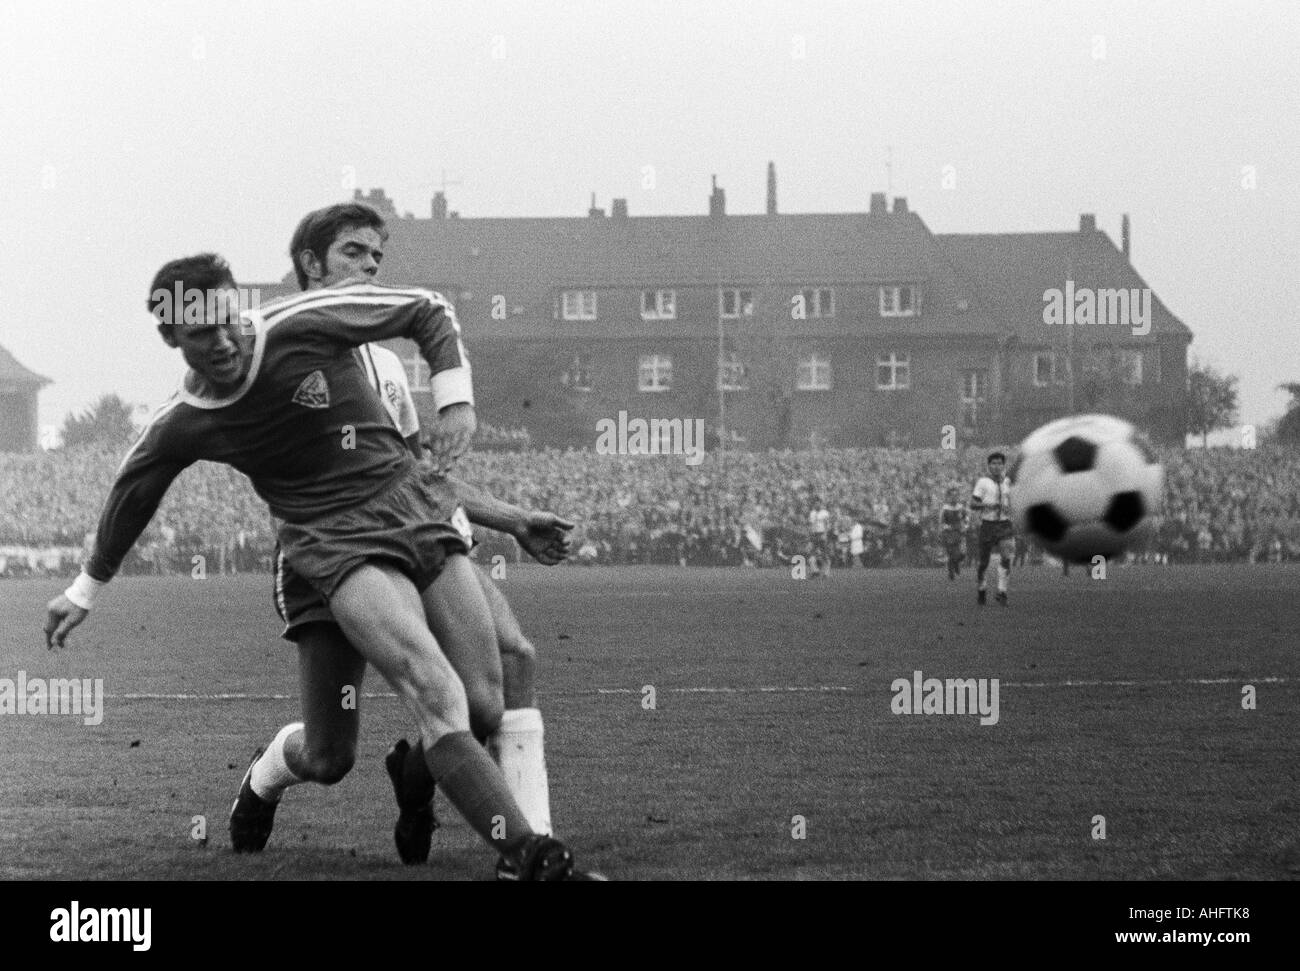 football, Regionalliga West, 1968/1969, VfL Bochum versus Rot-Weiss Essen 2:1, Stadium an der Castroper Strasse in Bochum, scene of the match, duel between Erwin Galeski (VfL) left and Rolf Lefkes (RWE) - Stock Image